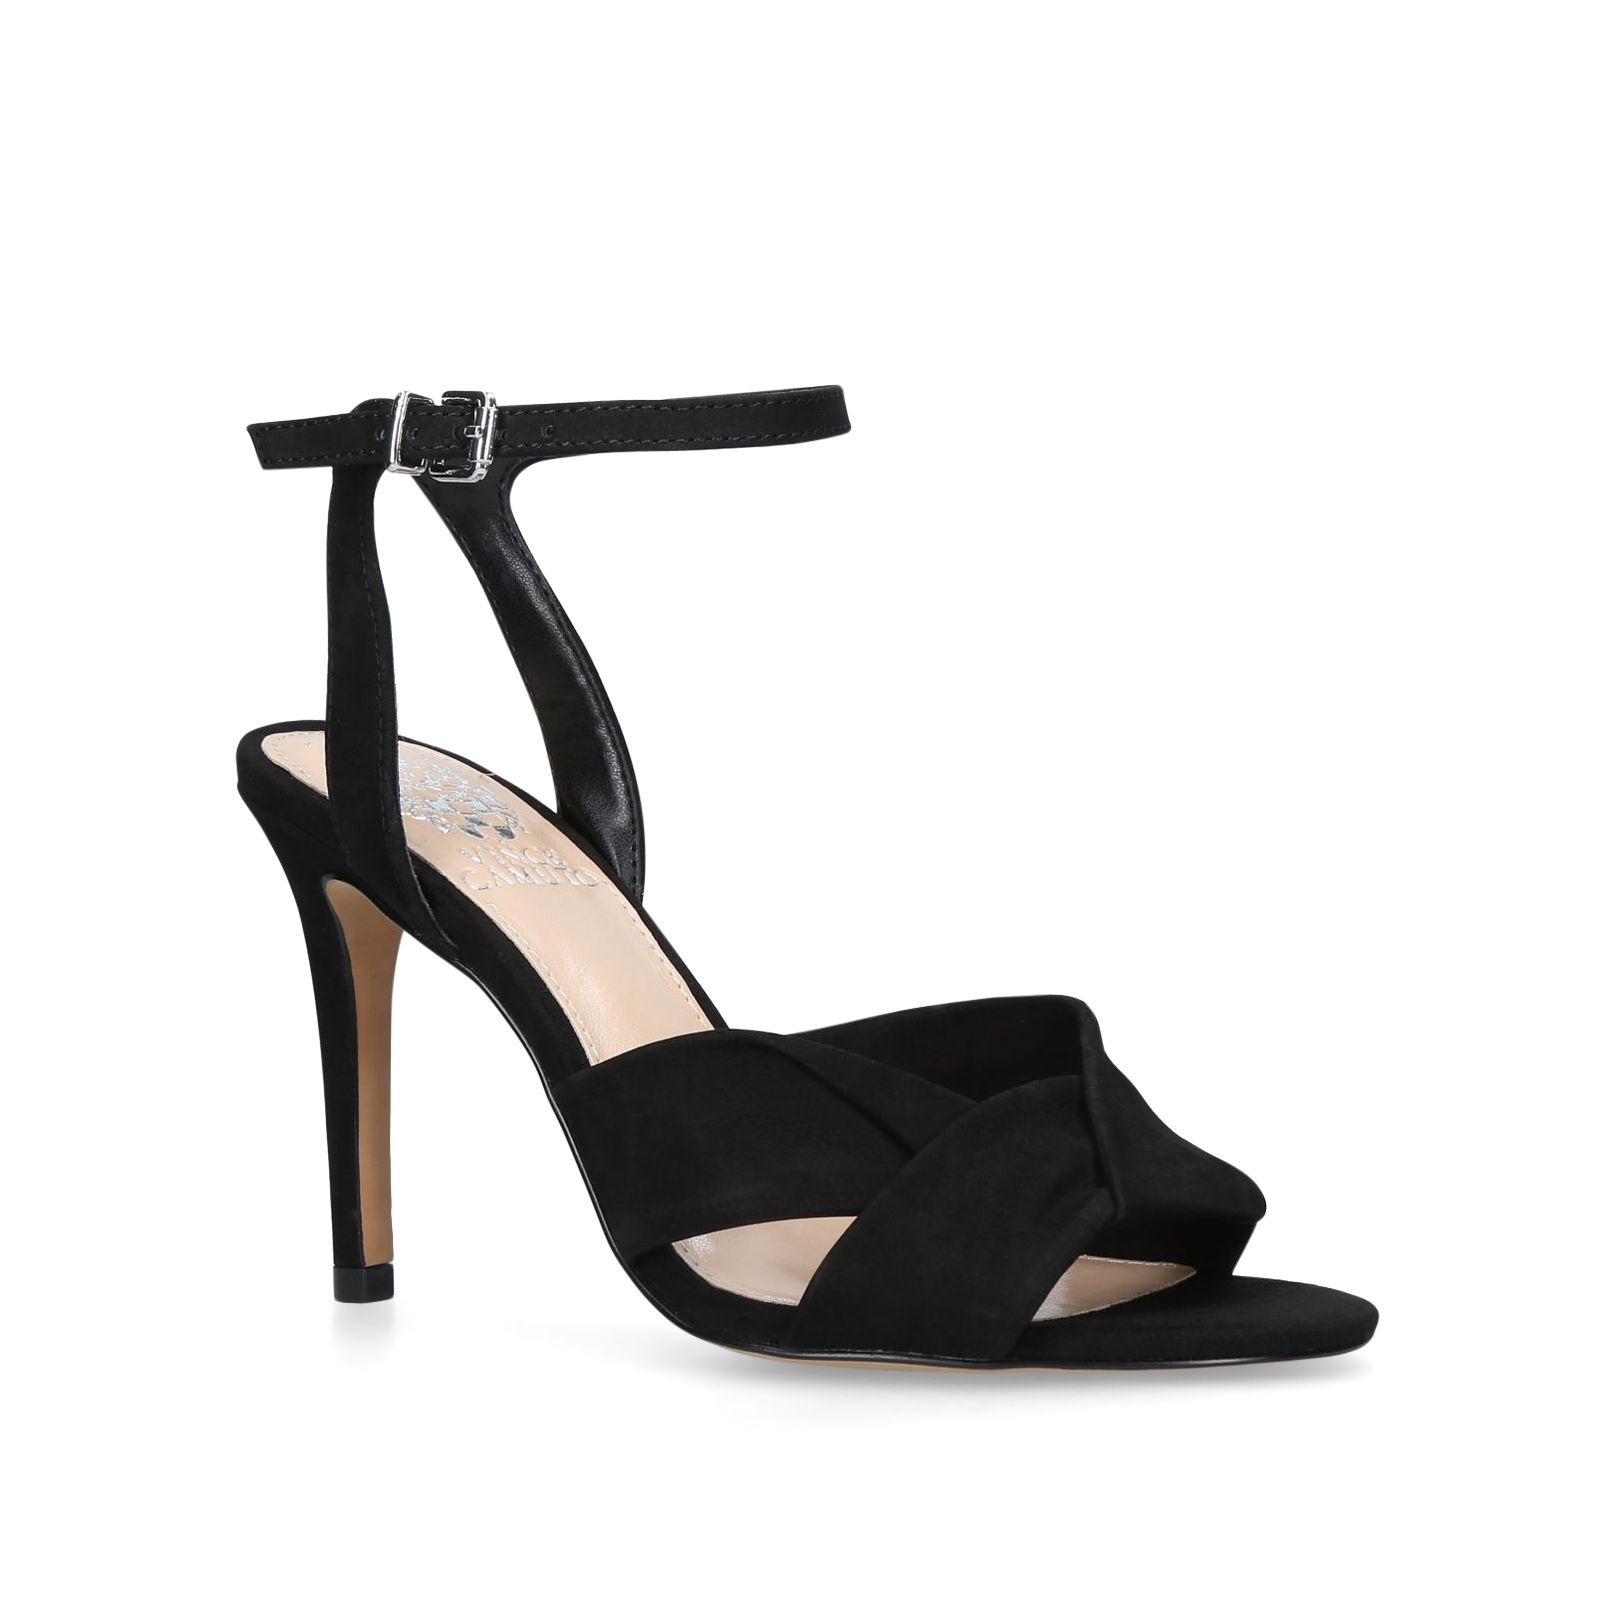 Vince Camuto Jenika Sandals, Black